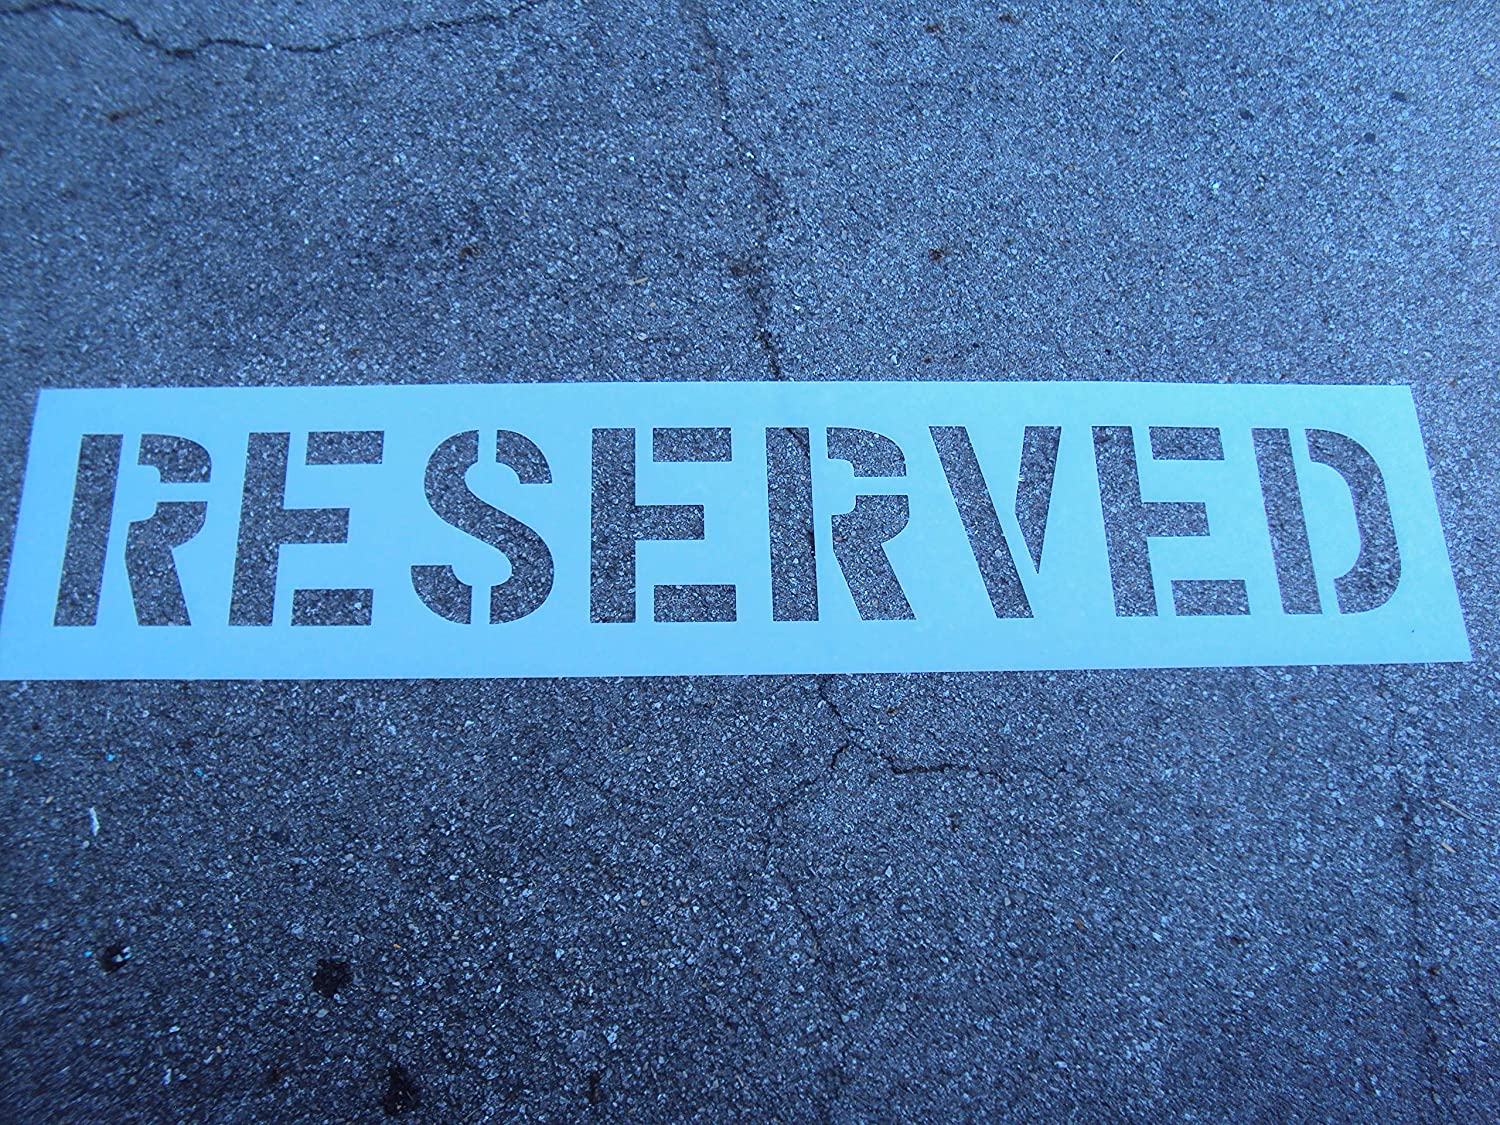 12 RESERVED Stencil ACTUAL 12 Inch Letters 1//16 Inch thick plastic material Parking Lot Stencil